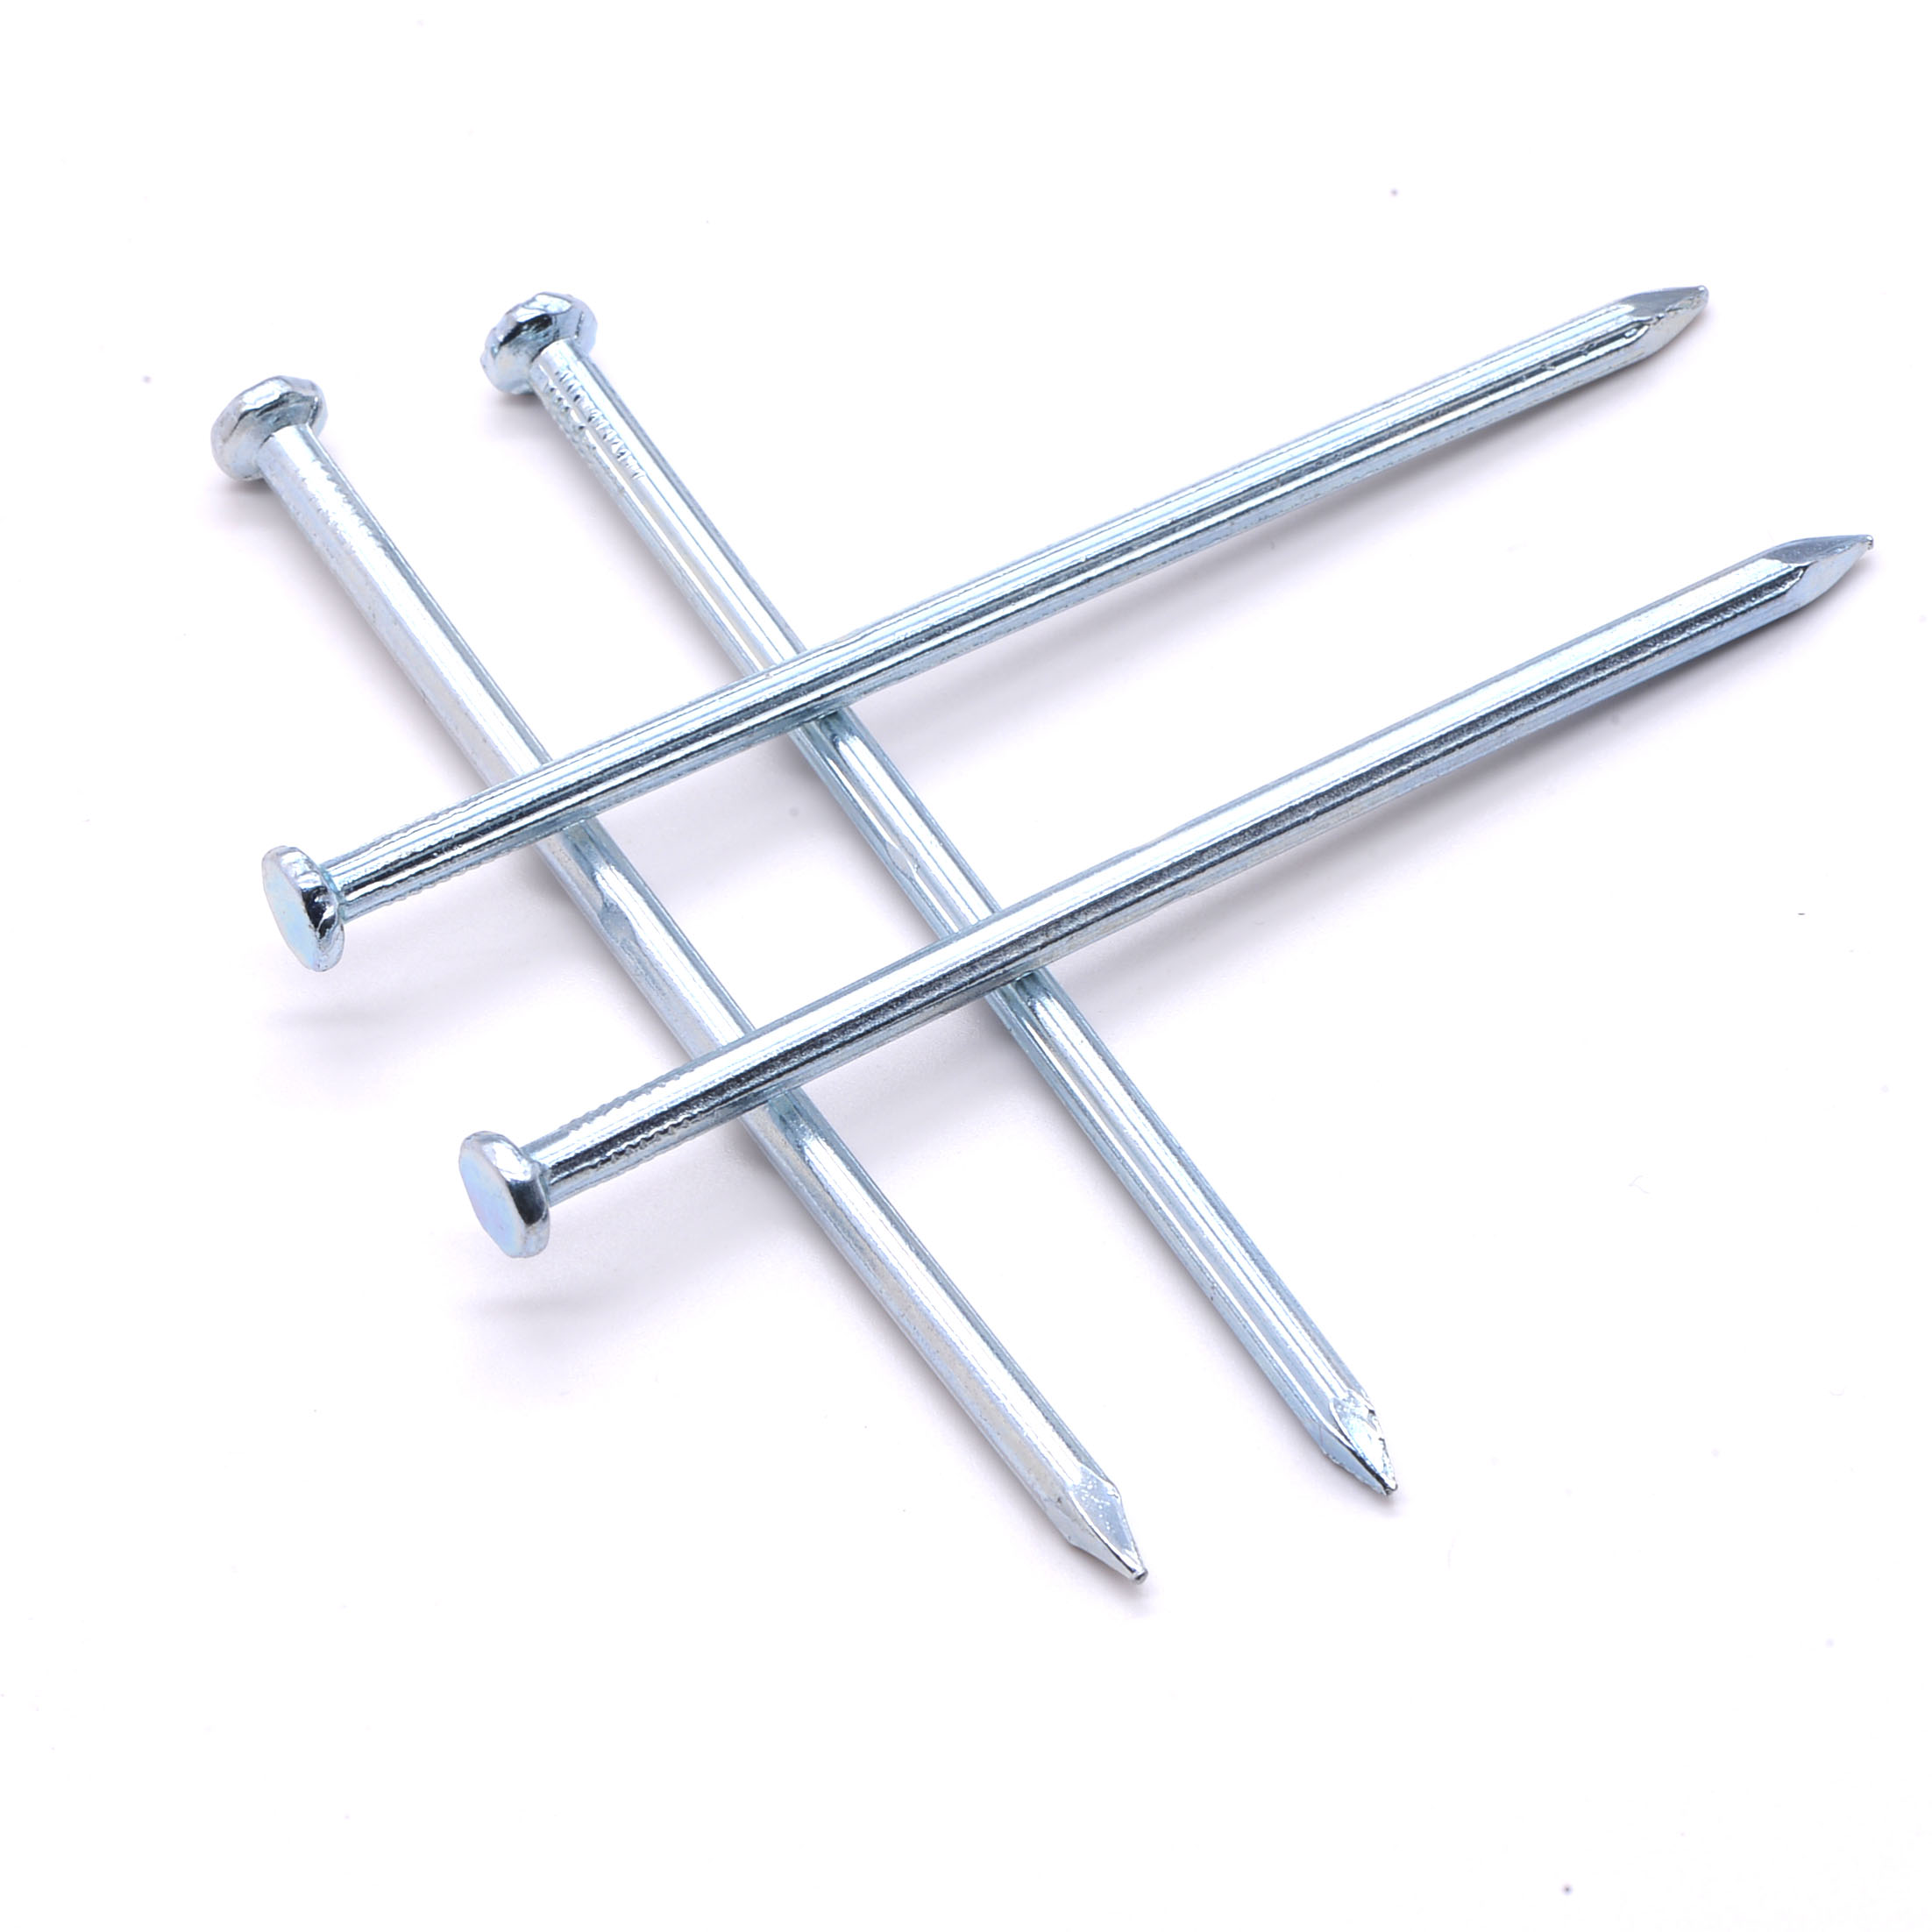 2.8-5.0mm Shank Diameter and Steel Material E.G Concrete Nail